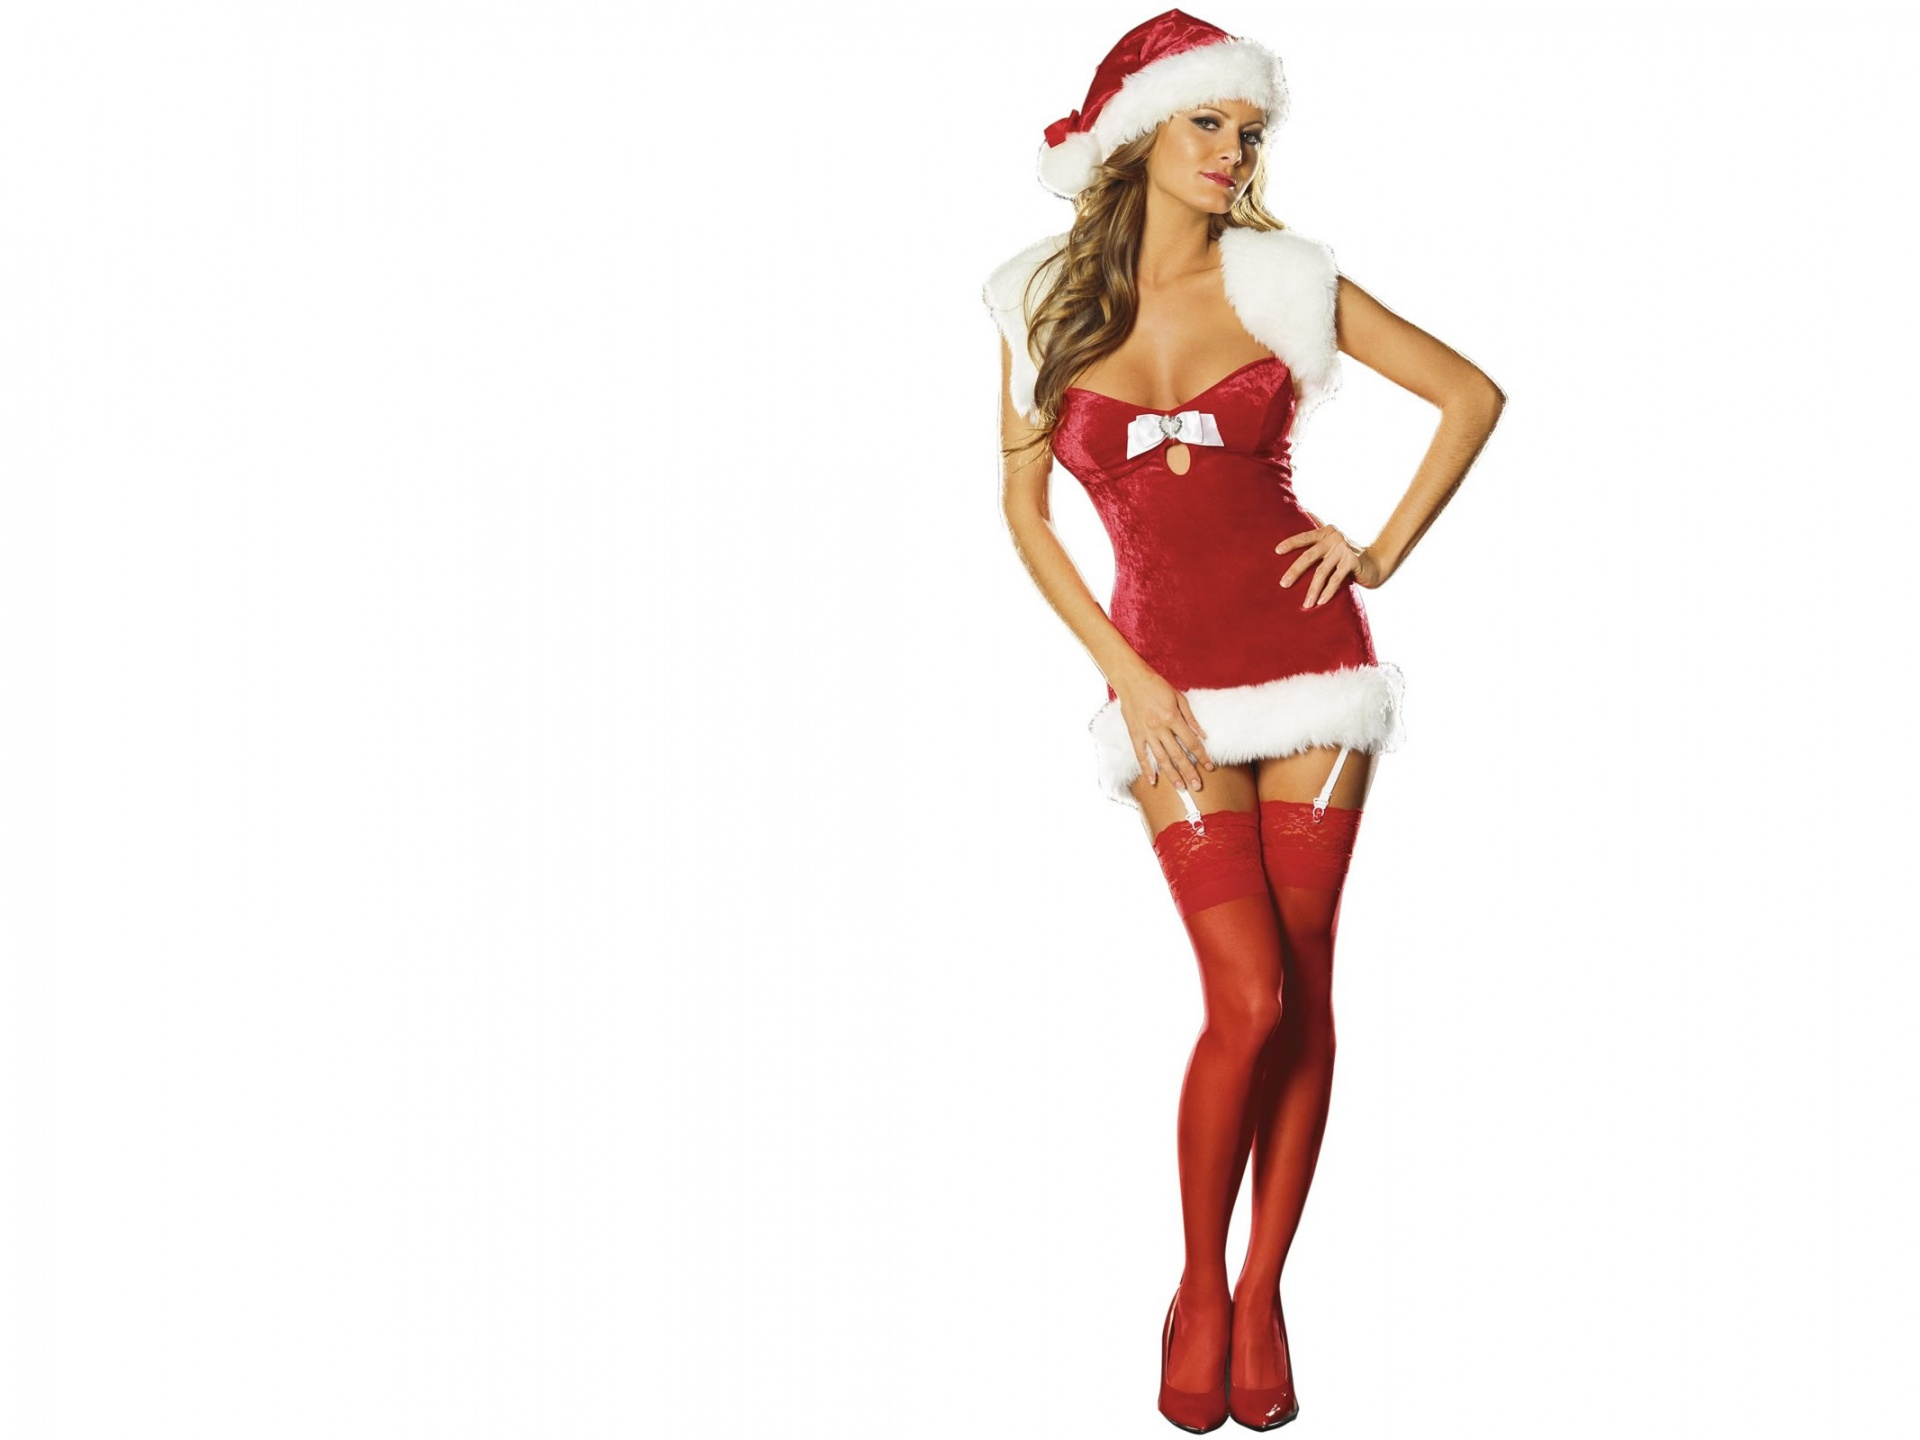 Hot elf babes fucking santa claus pictures naked film